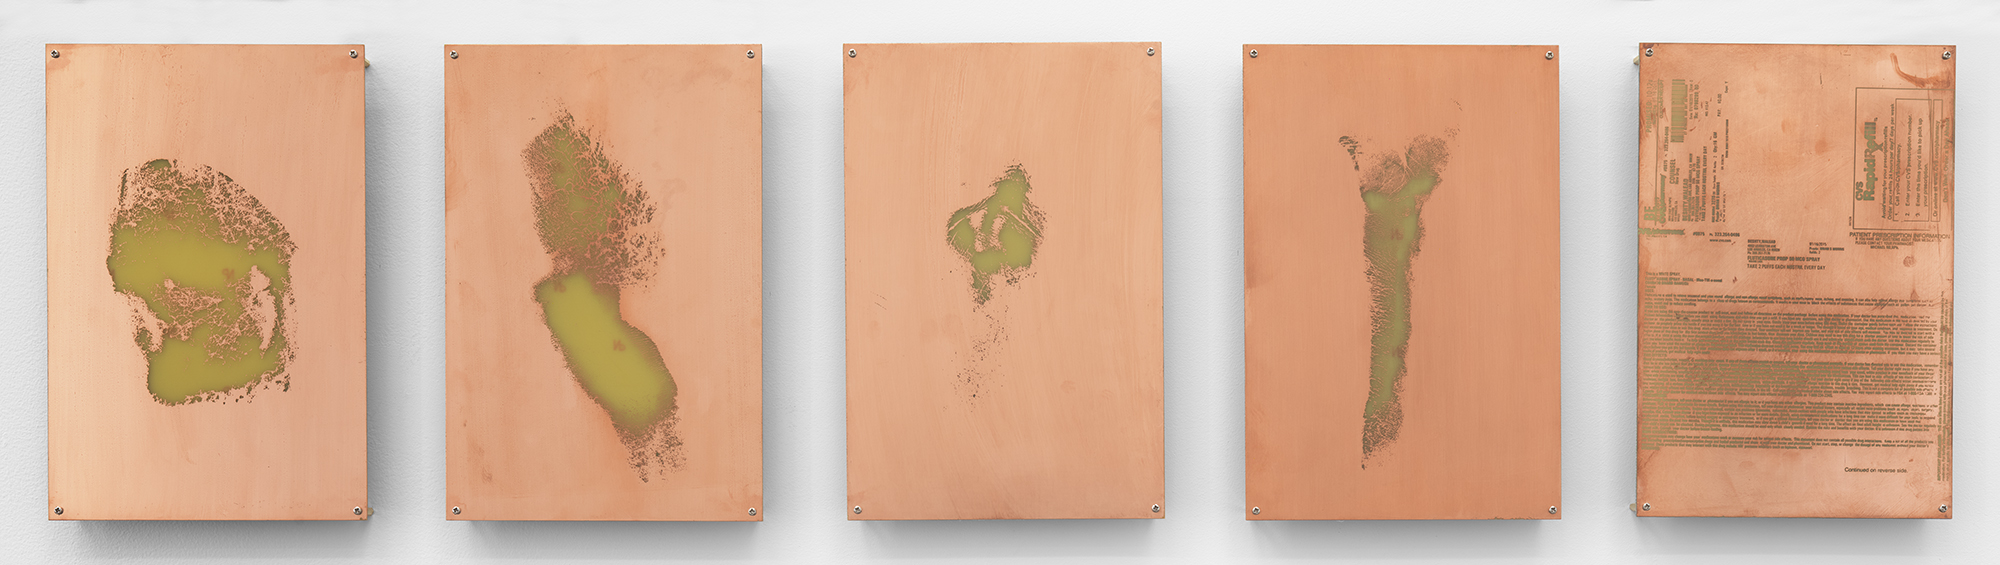 Body Print (Popliteal Fossa, Left Antebrachium, Right Antebrachium, Right Carpal and Attending Soft Tissues, Fluticasone Prop 50 mcg Spray)    2017   Etched copper-clad FR-4 glass-reinforced epoxy laminate board  12 x 8 inches each, 5 parts   Open Source, 2017